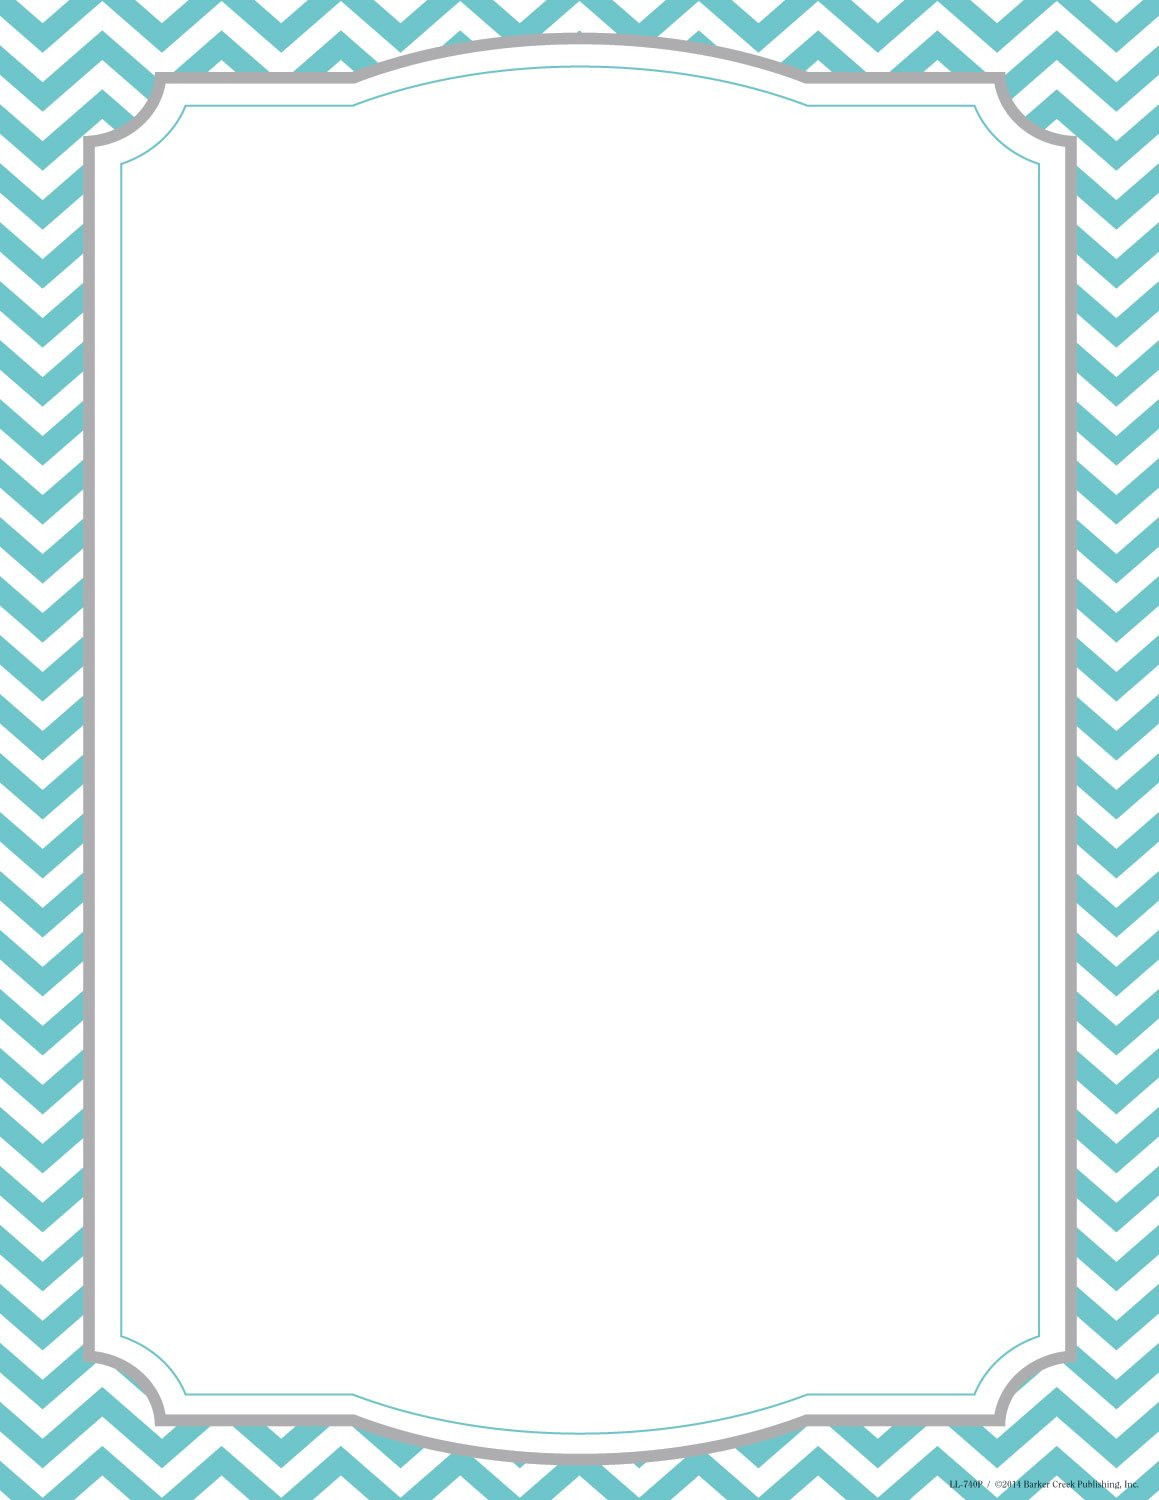 "Barker Creek Turquoise Chevron Computer Paper, 8-1/2"" x 11"", Pack of 50"